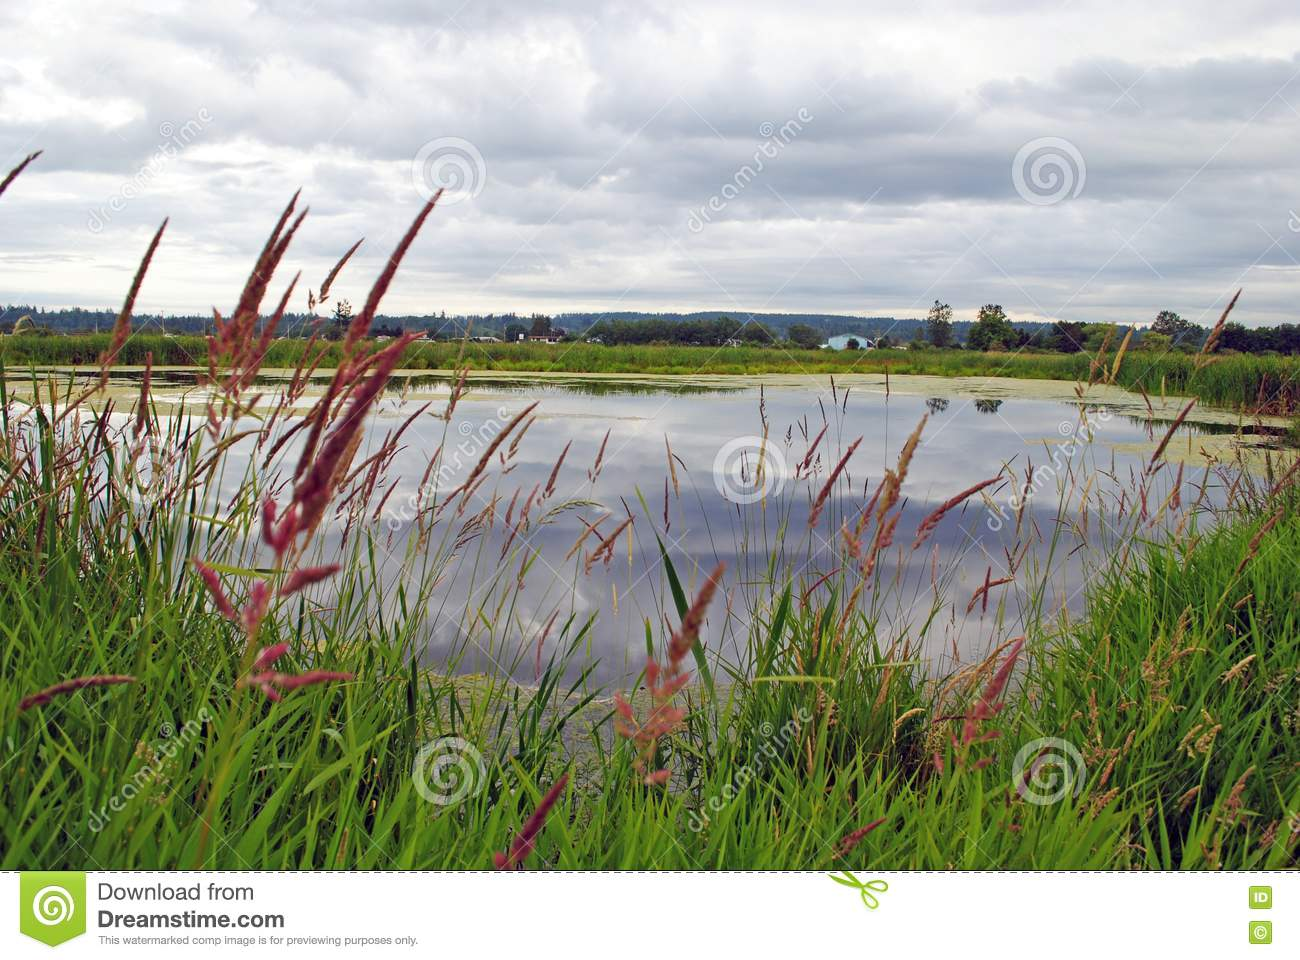 Reeds growing by the pond stock photography image 17559112 for Pond reeds for sale